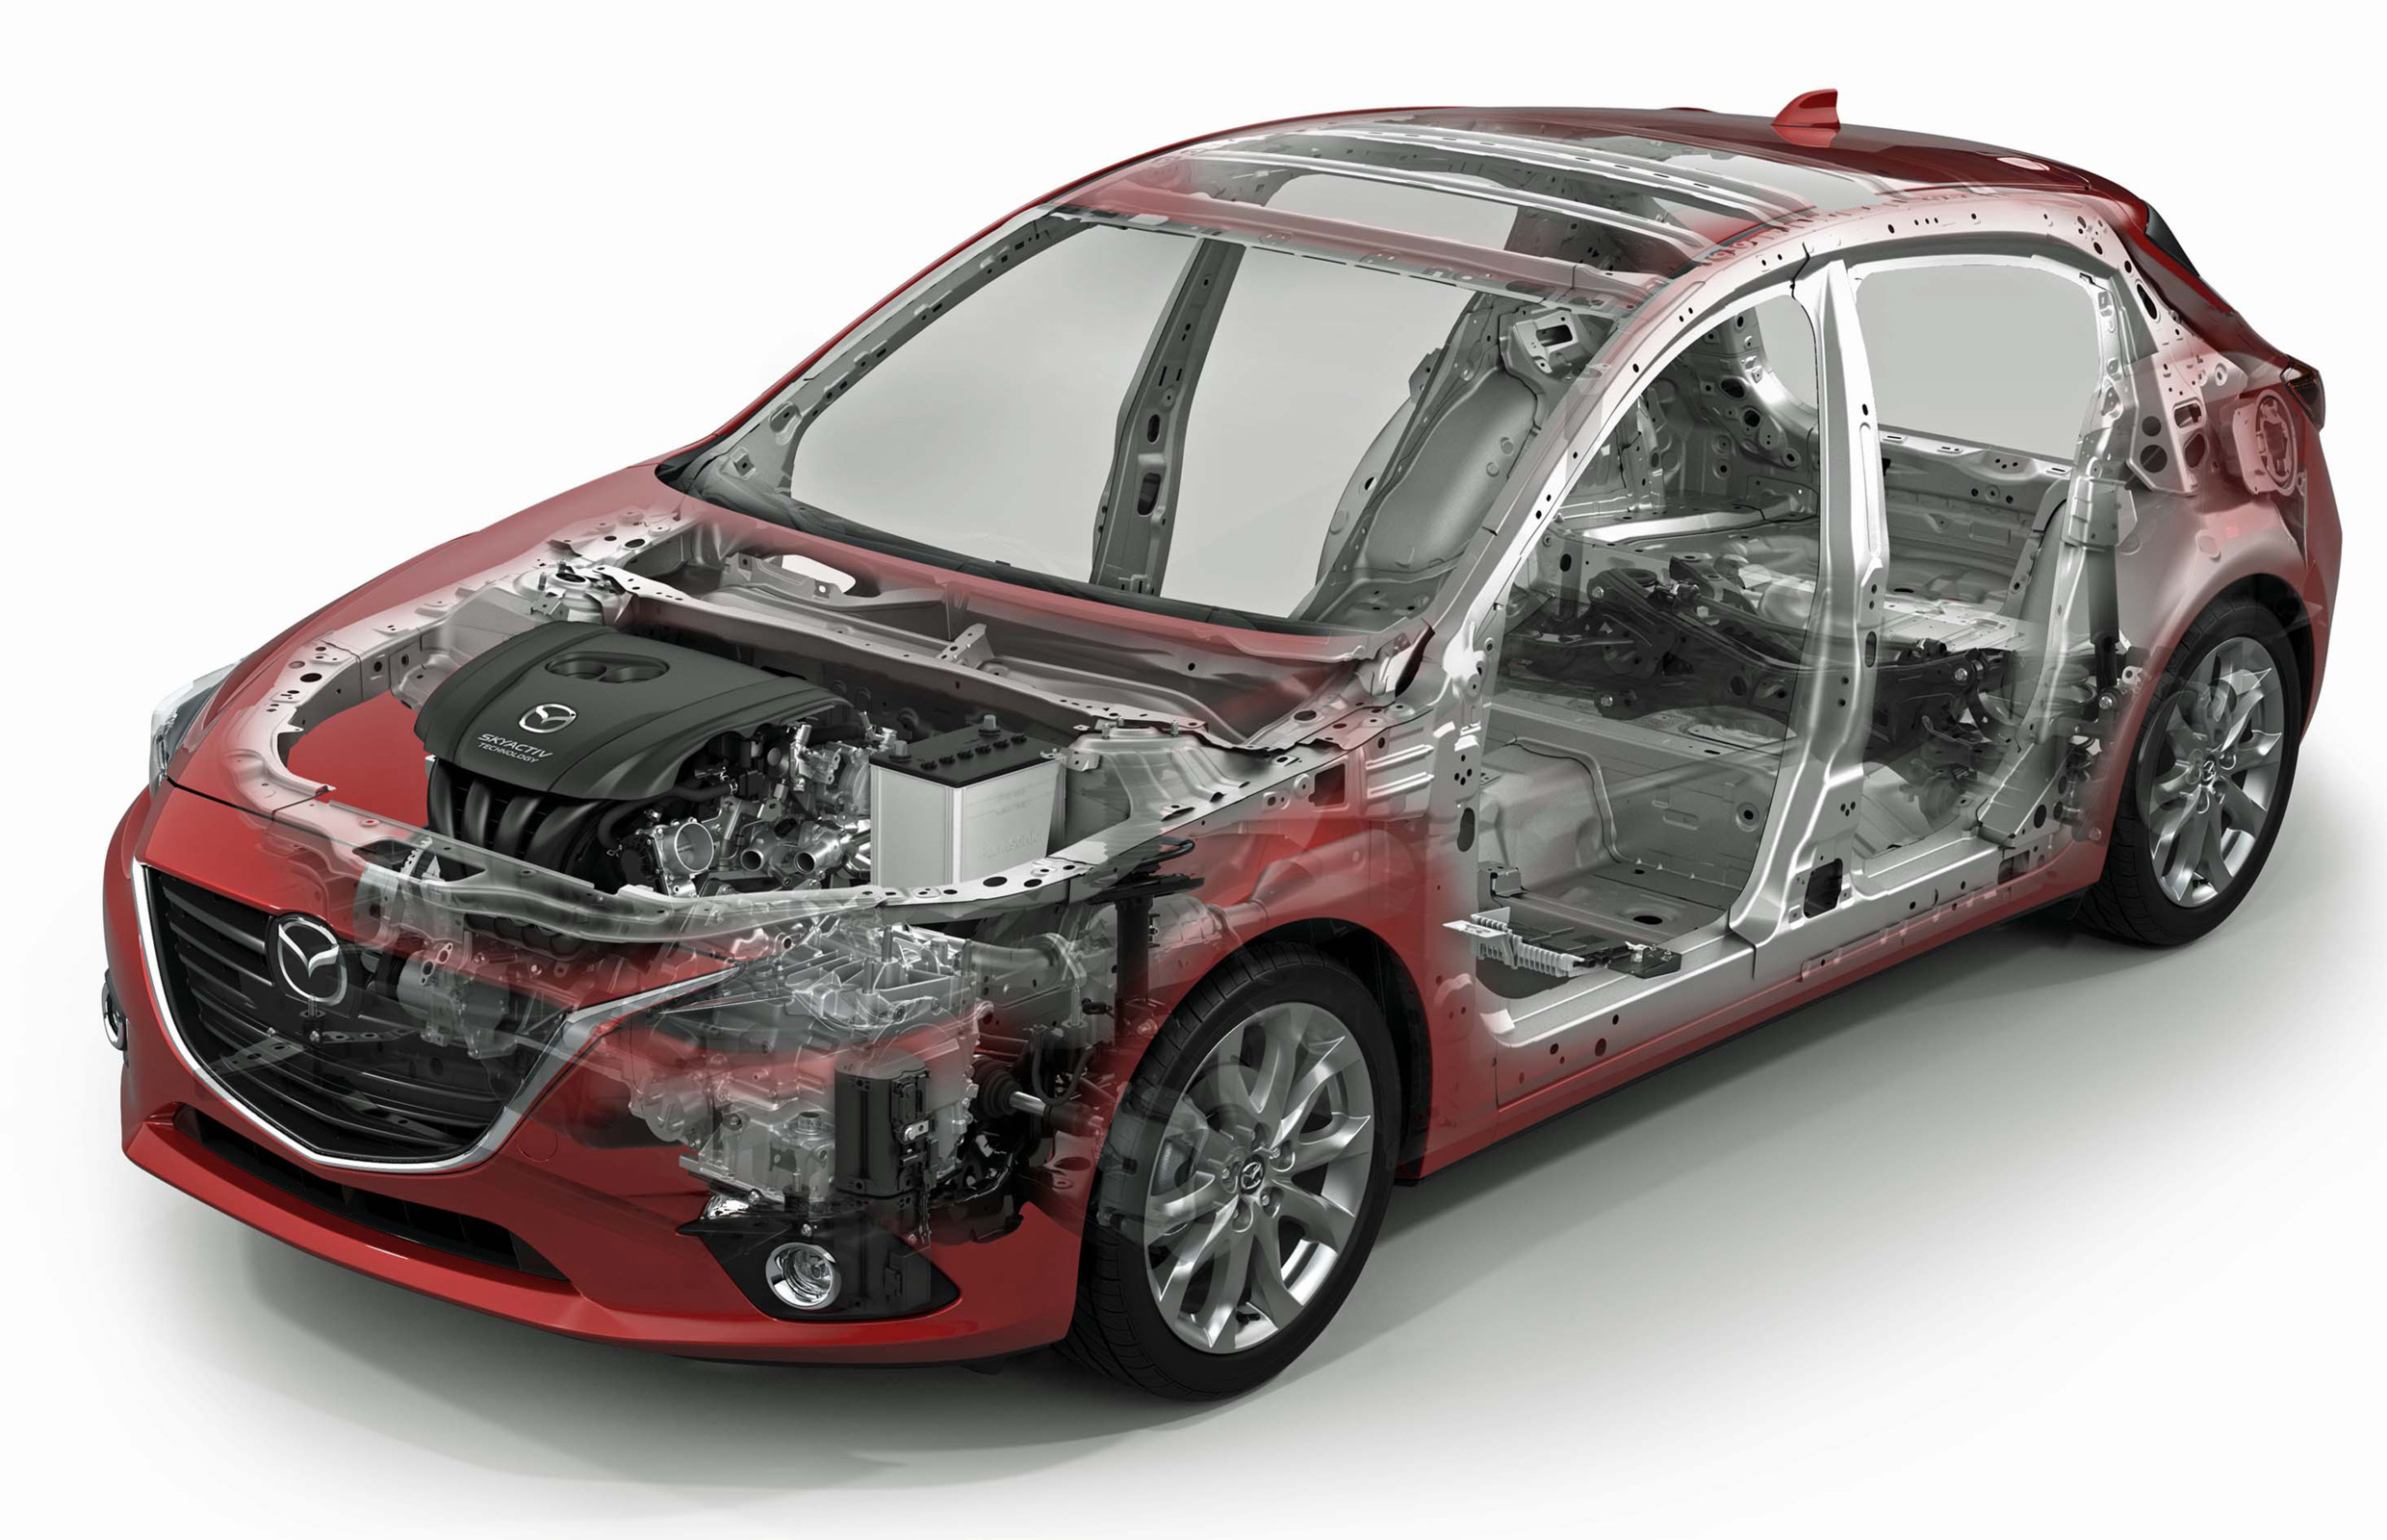 exception en all be certified soon news technical standard the to engine with manufacturers ordered d skyactiv replaced emission vehicles under euro compliant temp europe engines will update fleet that new of mazda